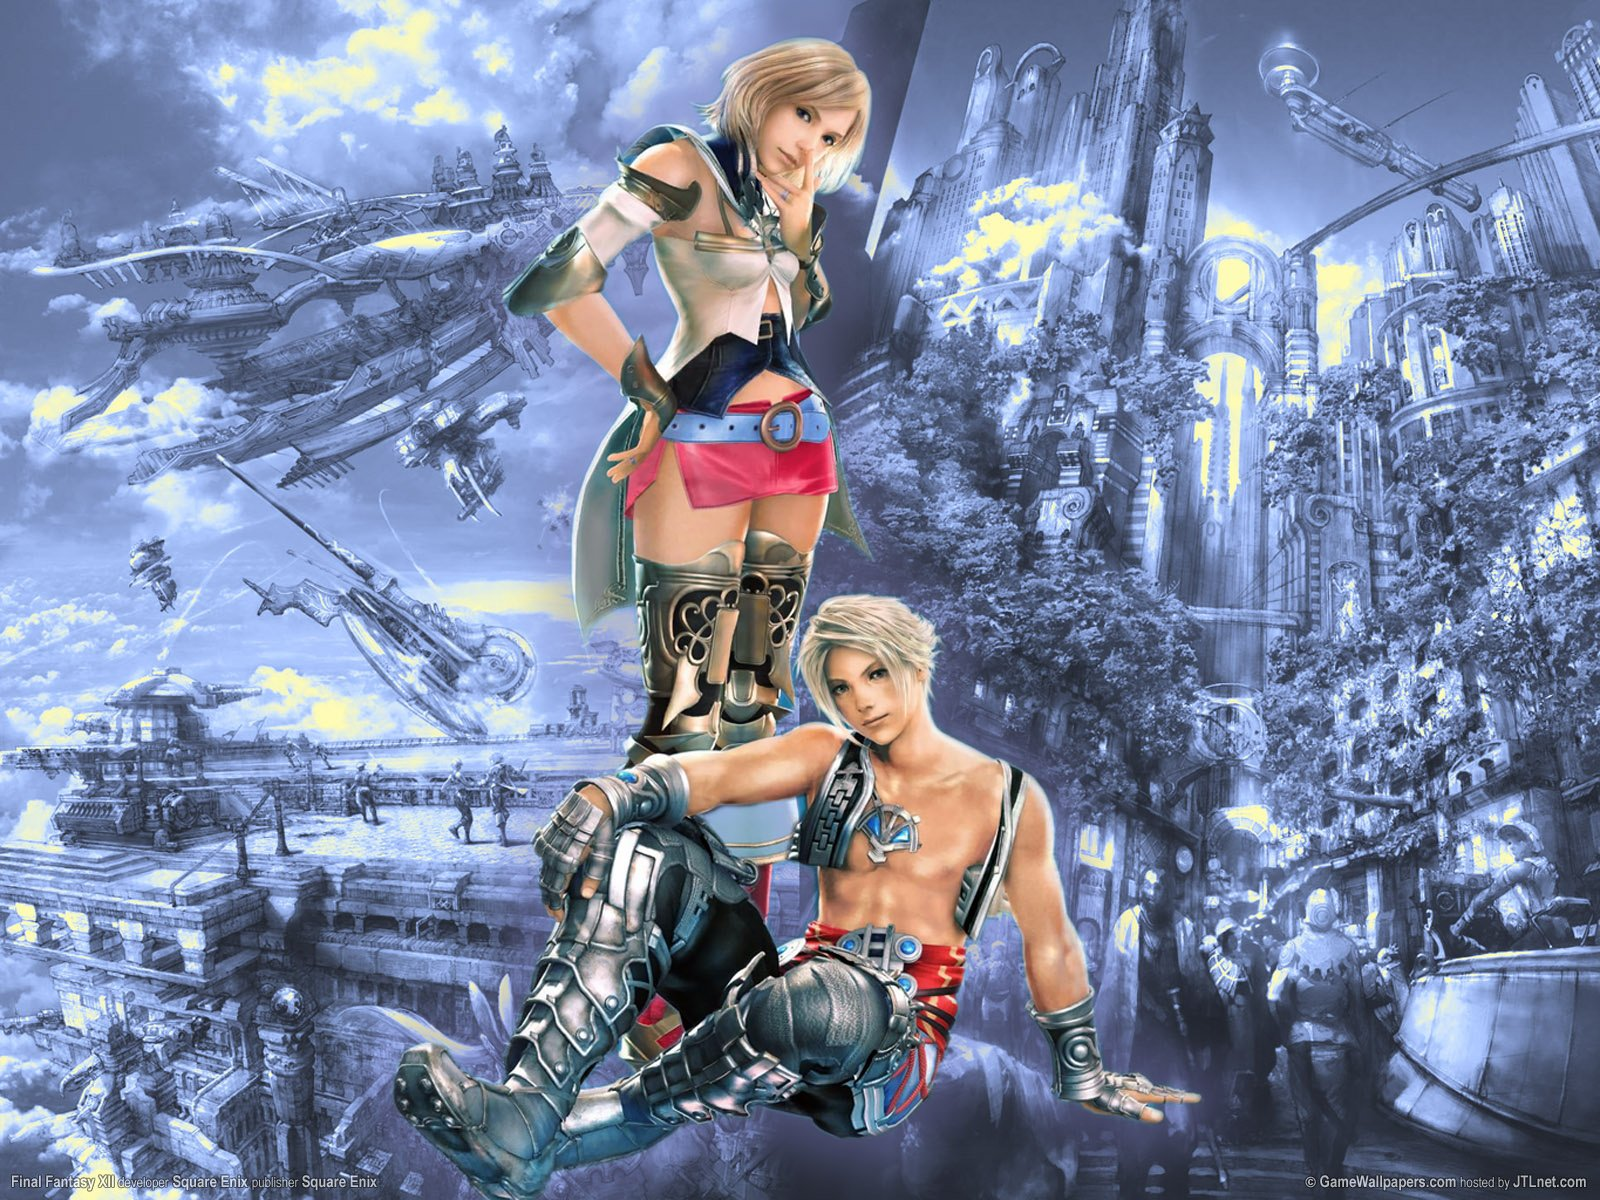 Rumour Is Final Fantasy Xii Coming To The Ps4 Next Push Square